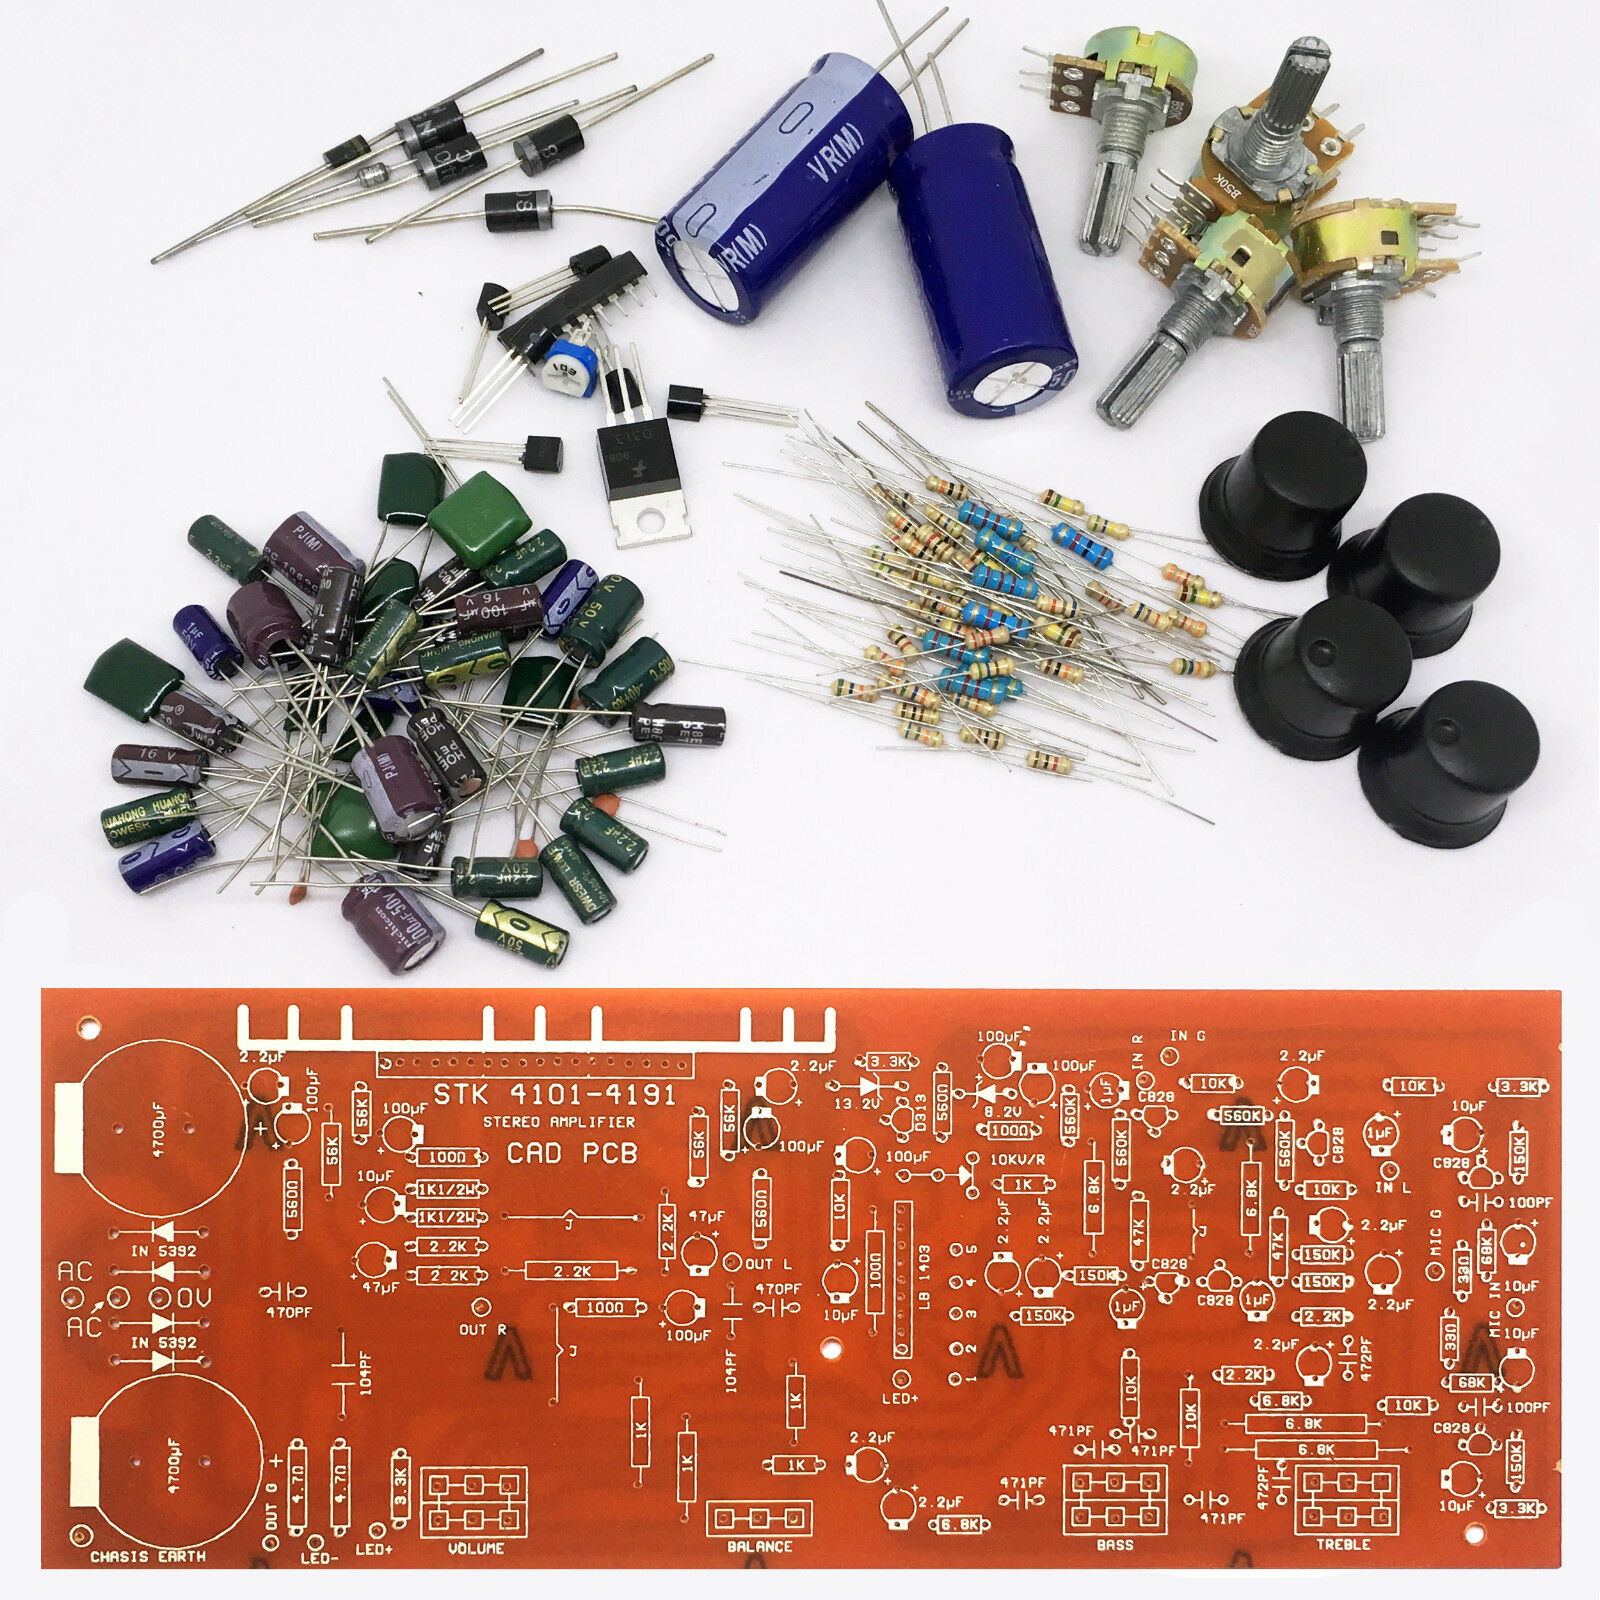 Stk 4101 4191 100w Power Amplifier With Pre Amp Mic Tone Ccl Anti Etching Pcb Circuit Board Ink Marker Pen For Diy Ebay Ctrl Kit